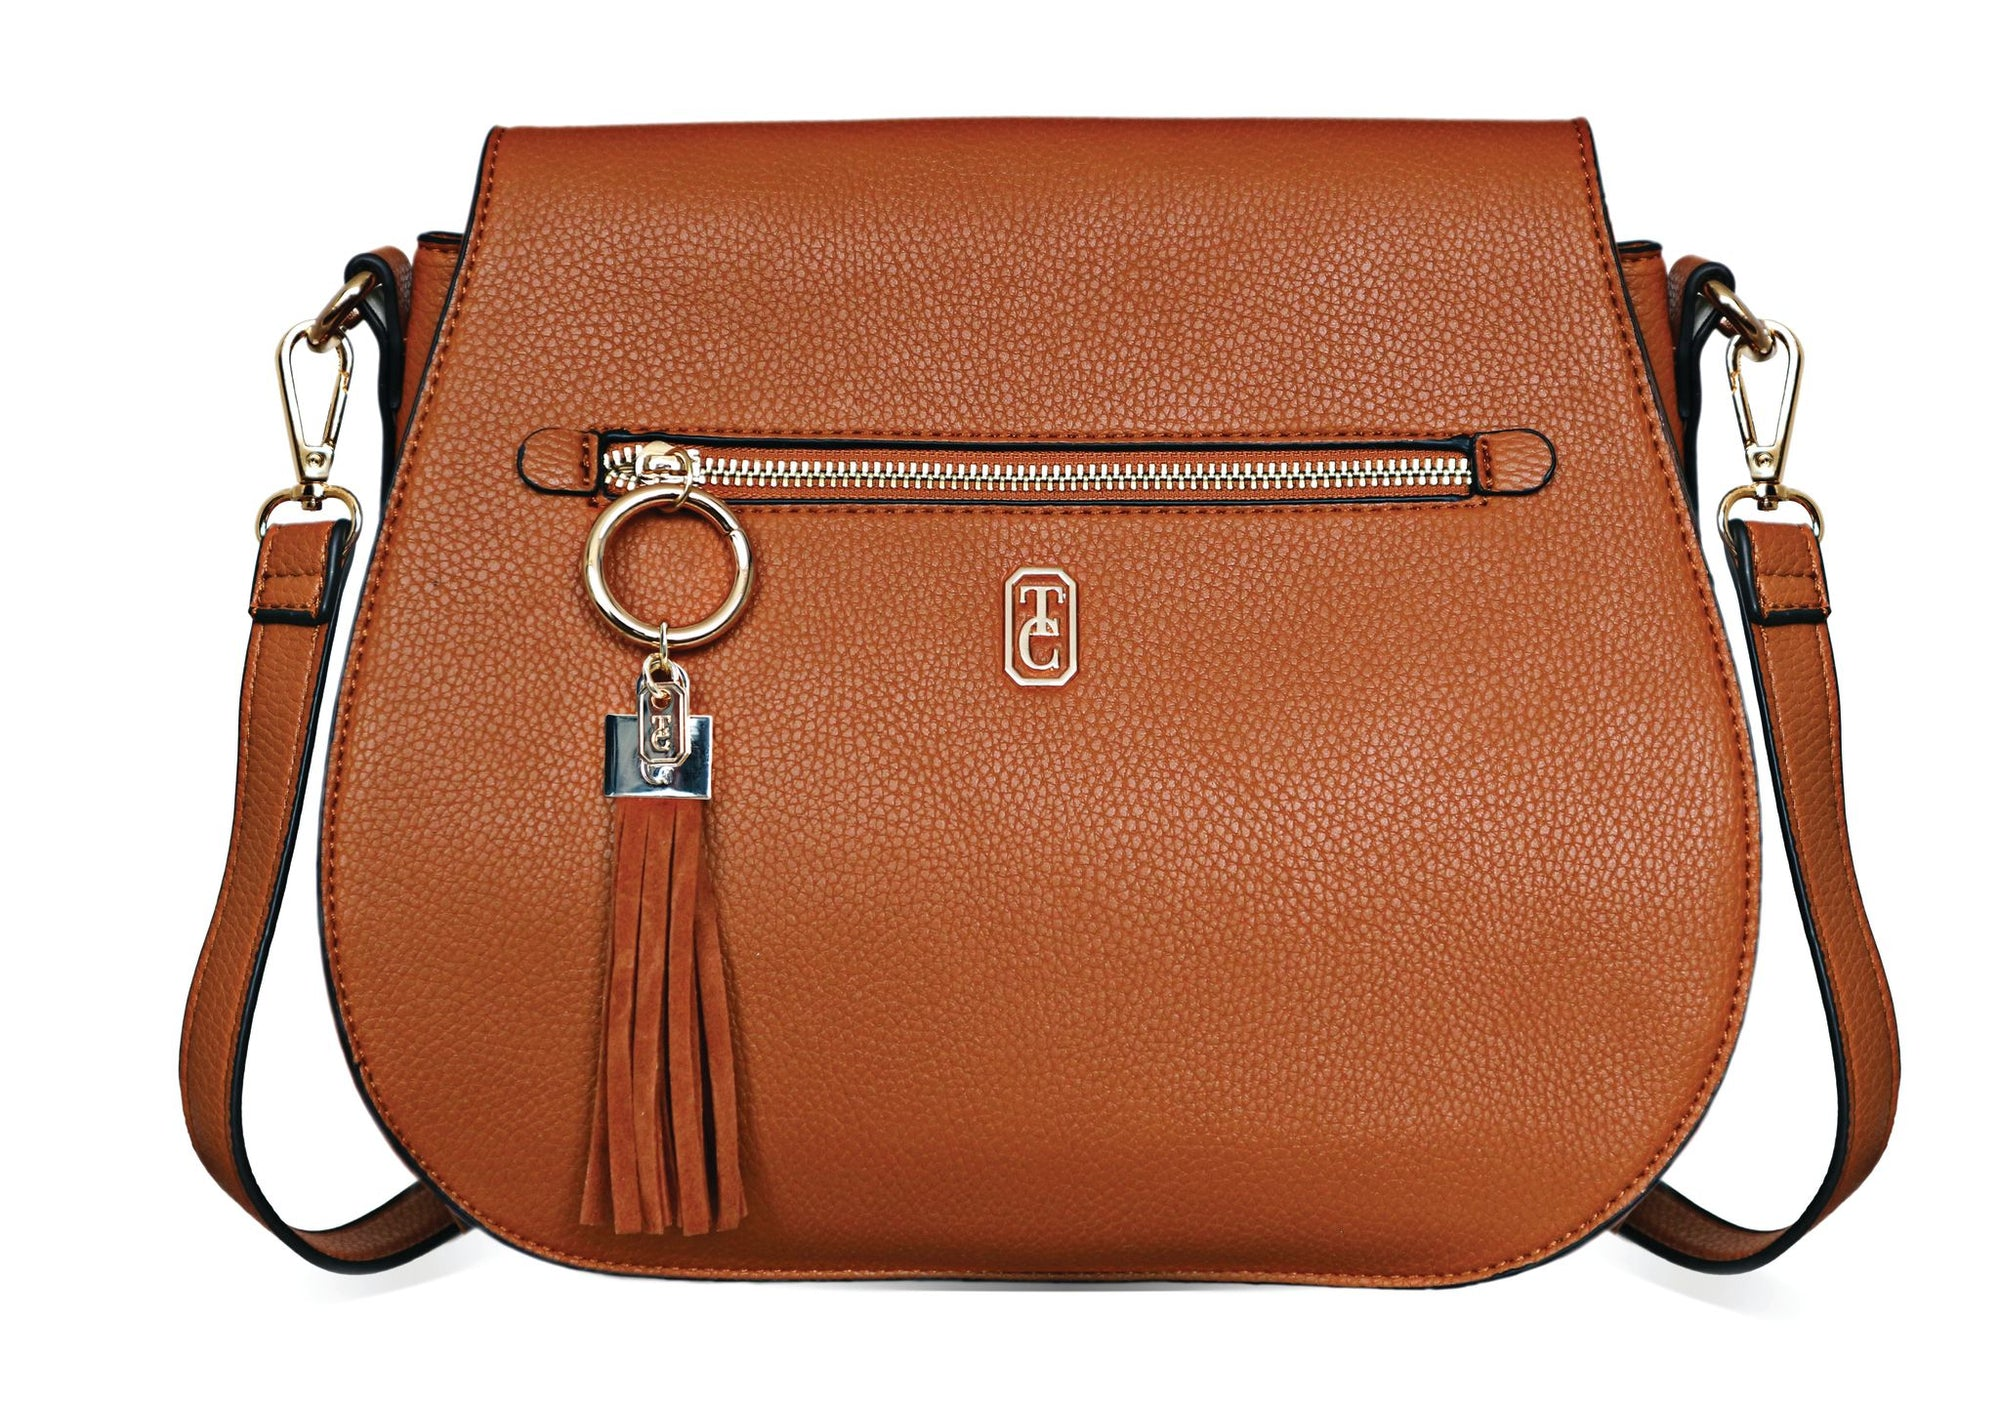 Tipperary Crystal Brown Satchel Bag